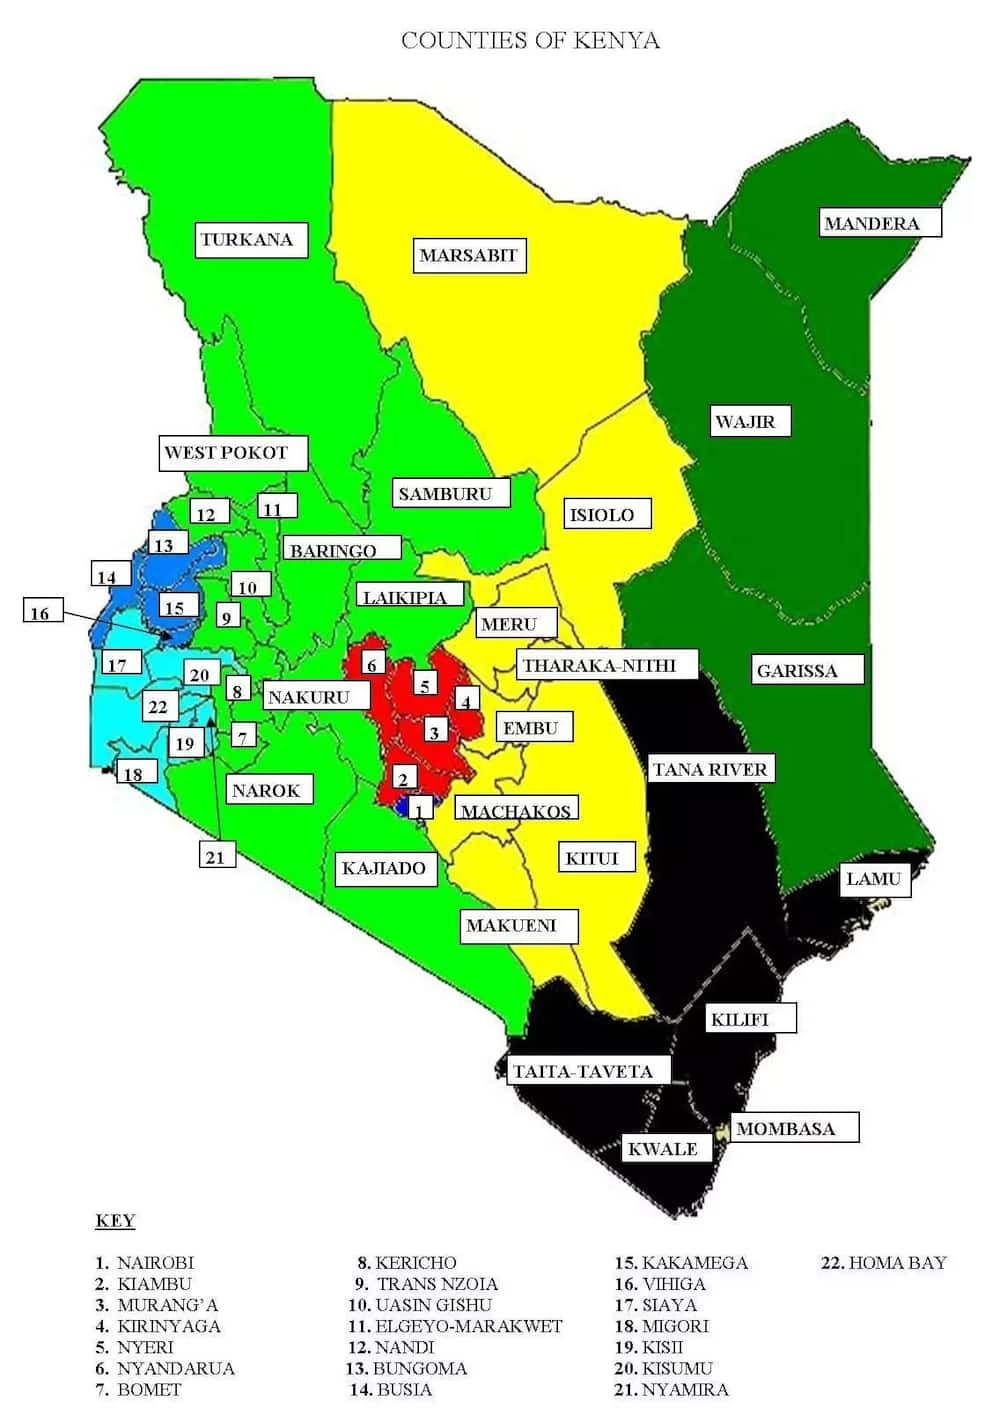 List of all county numbers in Kenya ▷ Tuko.co.ke Kenya County Map on constitution of kenya, ecuador county map, vice-president of kenya, kenya map showing counties, local authorities of kenya, kenya map detailed, argentina county map, cabinet of kenya, kenya colony map, national assembly of kenya, kenya town map, locations of kenya, israel county map, kenya ethnic map, administrative divisions of kenya, el salvador county map, kenya topographical map, speaker of the national assembly of kenya, guam county map, kenya police map, kenya route map, russia county map, kenya district map, kenya political map, manitoba canada county map, iran county map, kenya county jobs, kenya industry map,